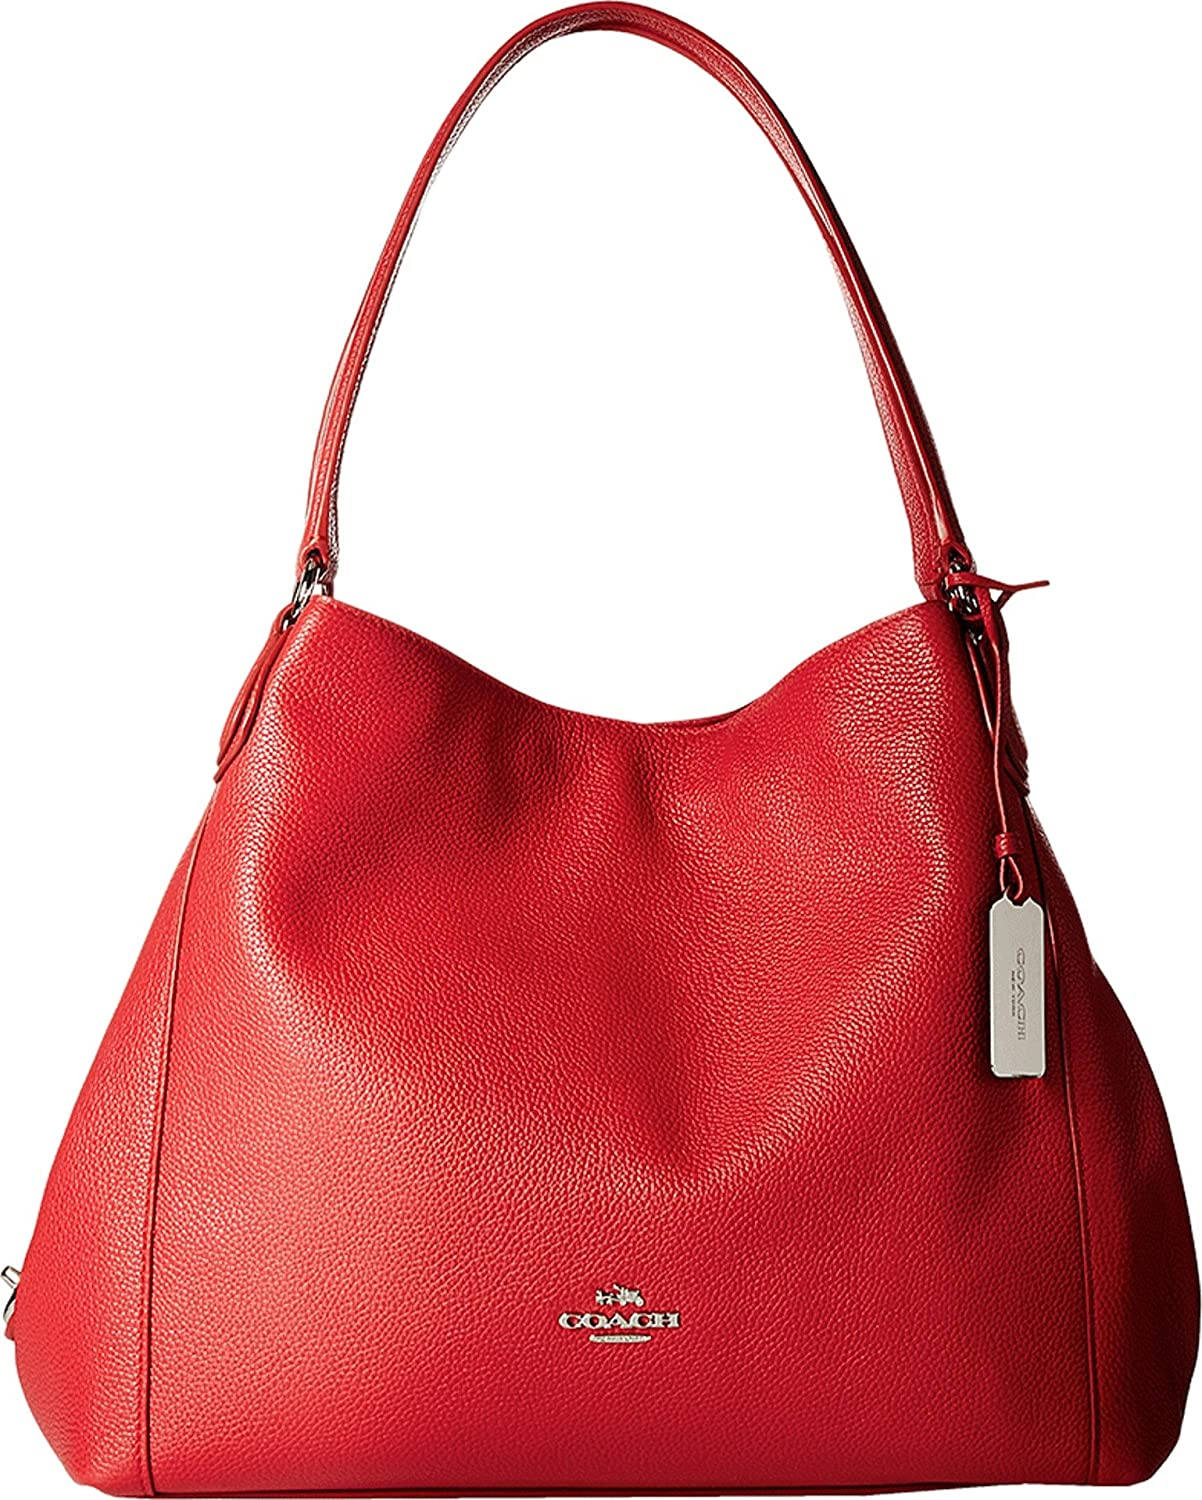 COACH Women's Refined Pebble Leather Edie 31 Shoulder Bag SV/True Red Shoulder Bag